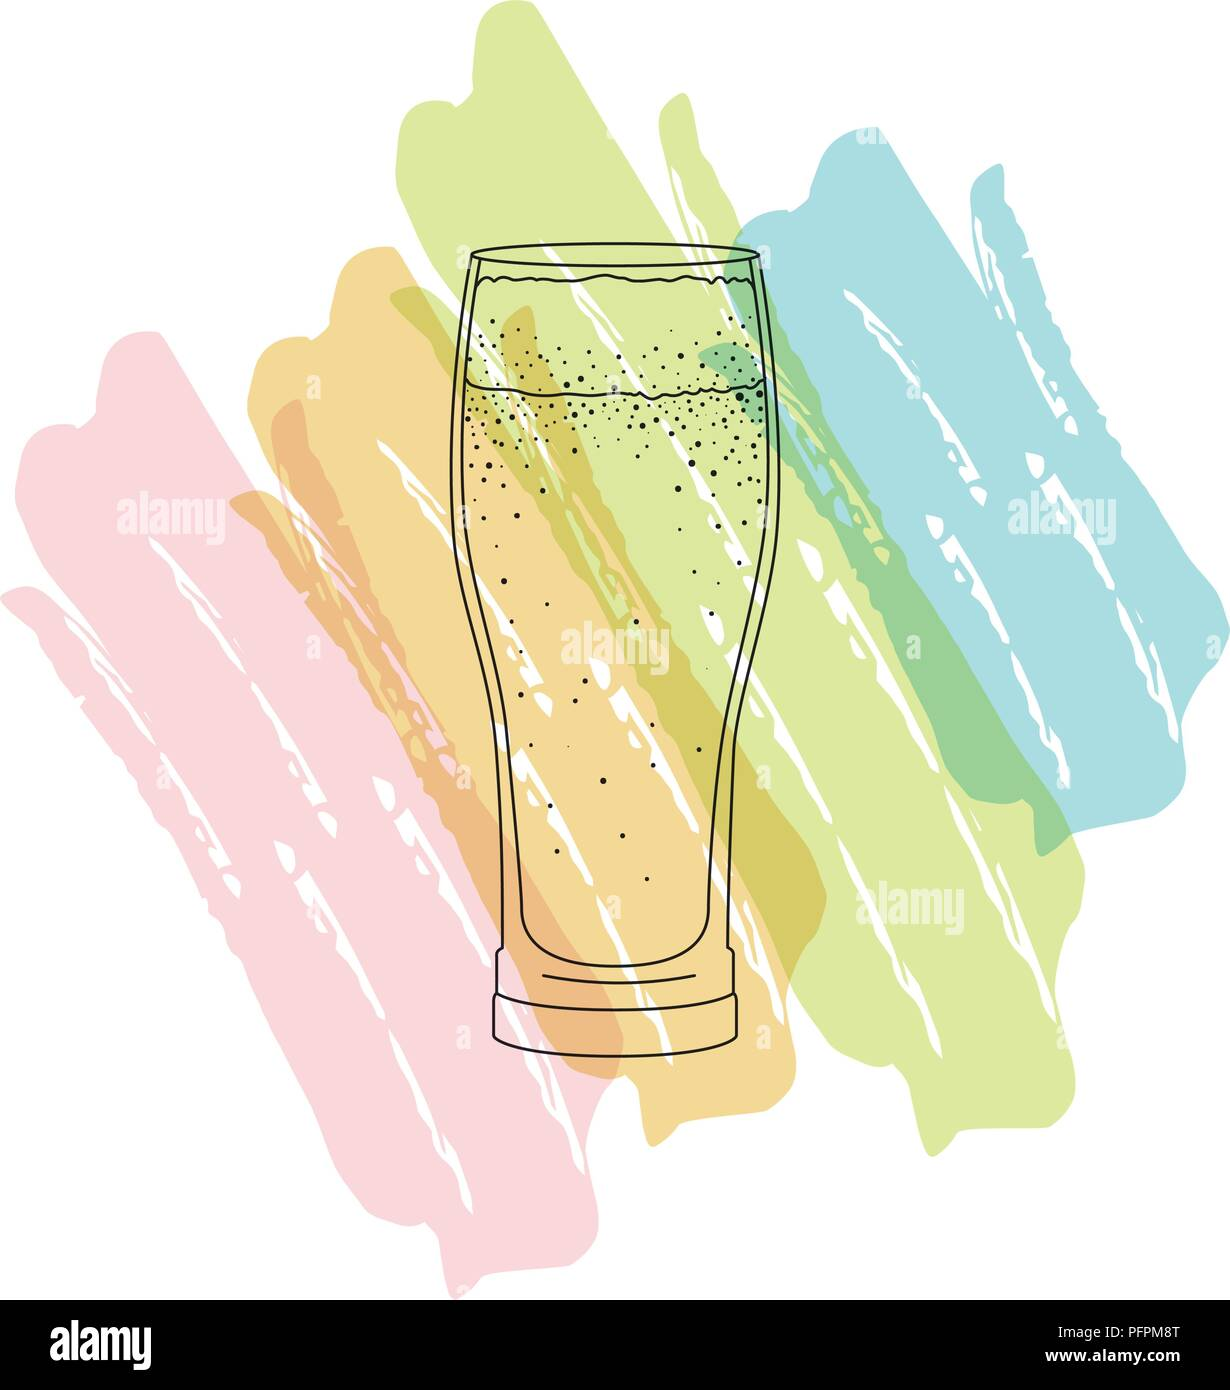 glass with beverage icon - Stock Vector